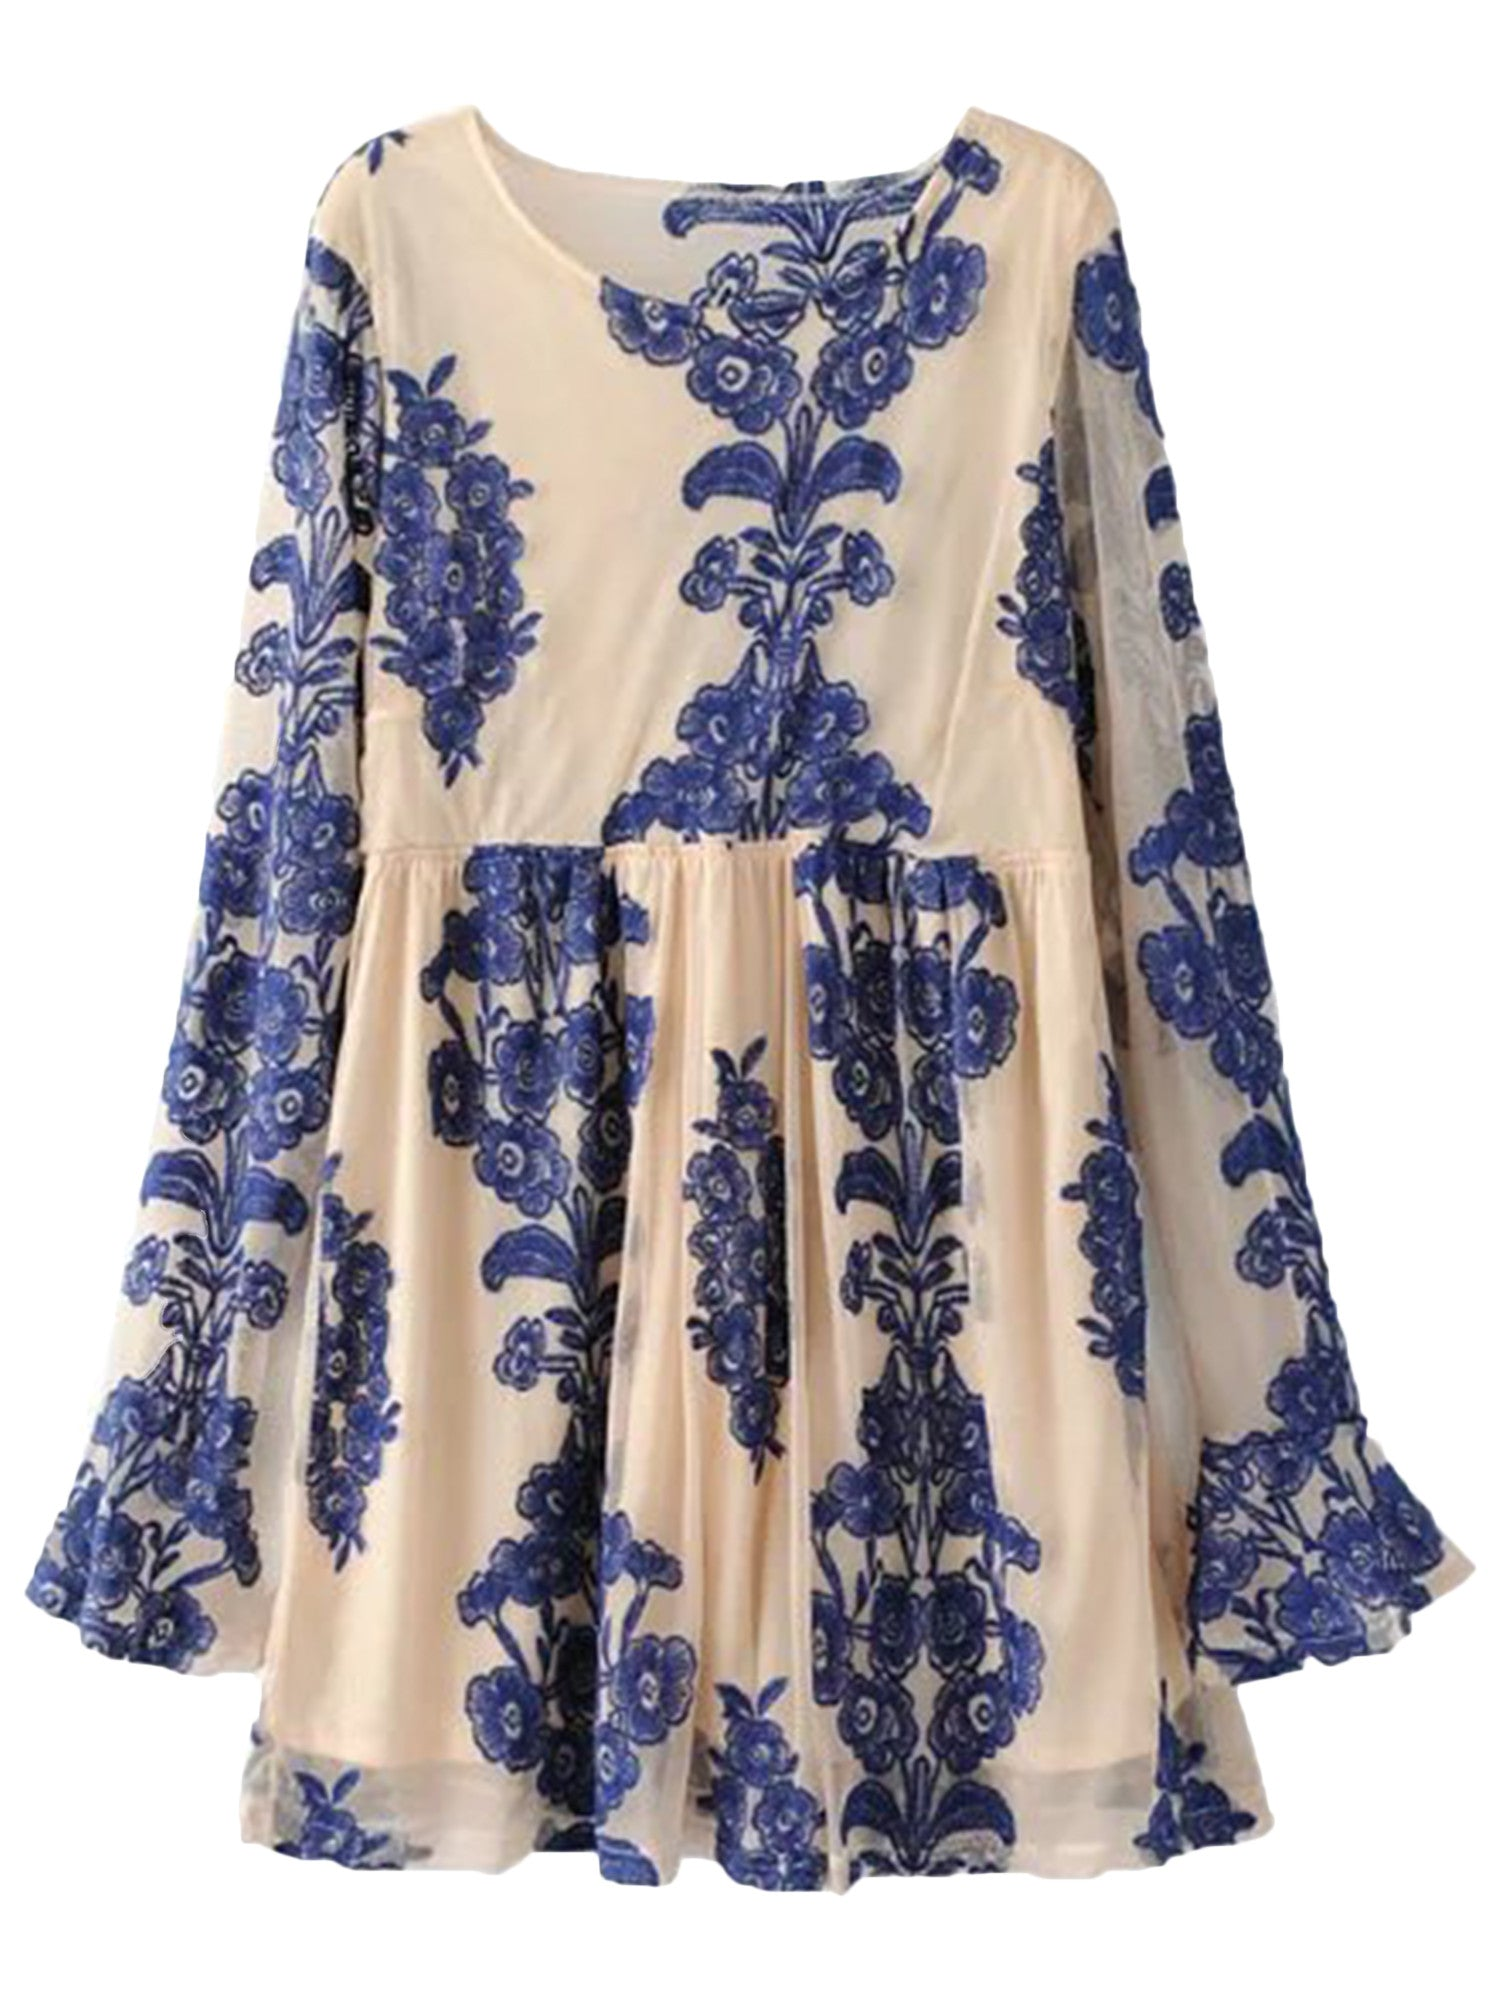 'Jin' Lace-up Floral Peplum Flare Dress